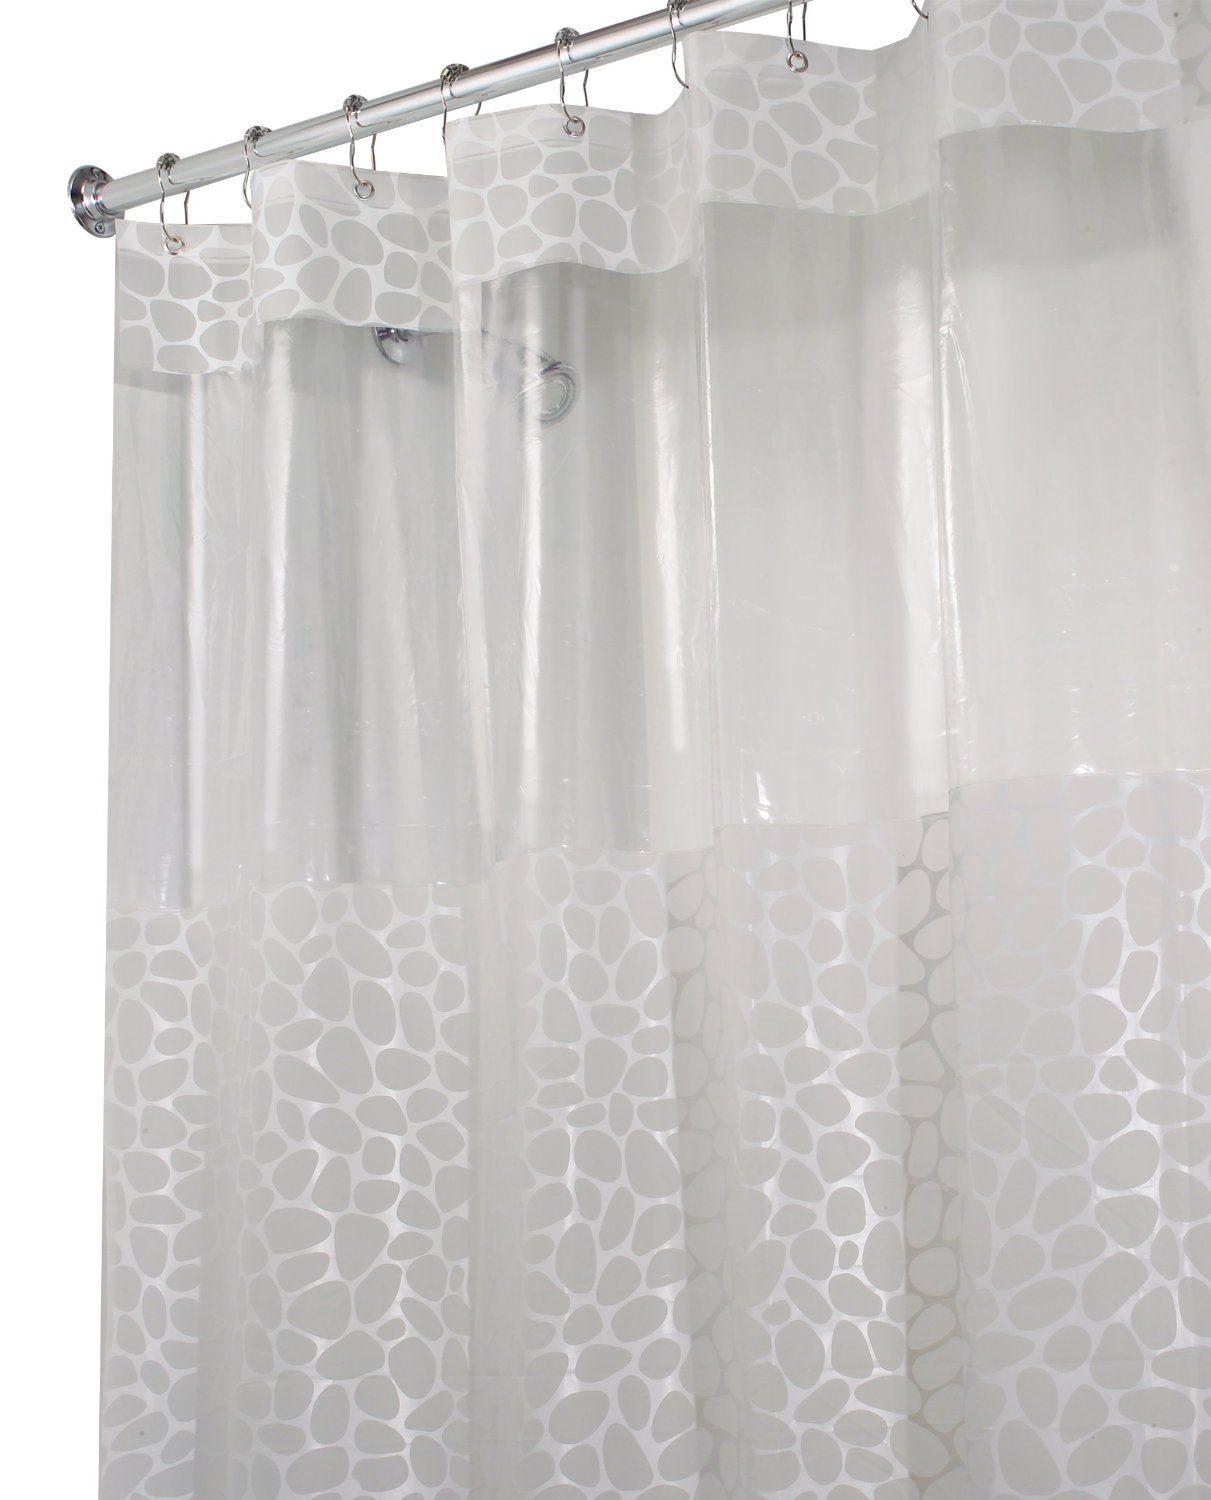 Amazon.com: InterDesign Pebblz Shower Curtain, Frosted White, 72 ...